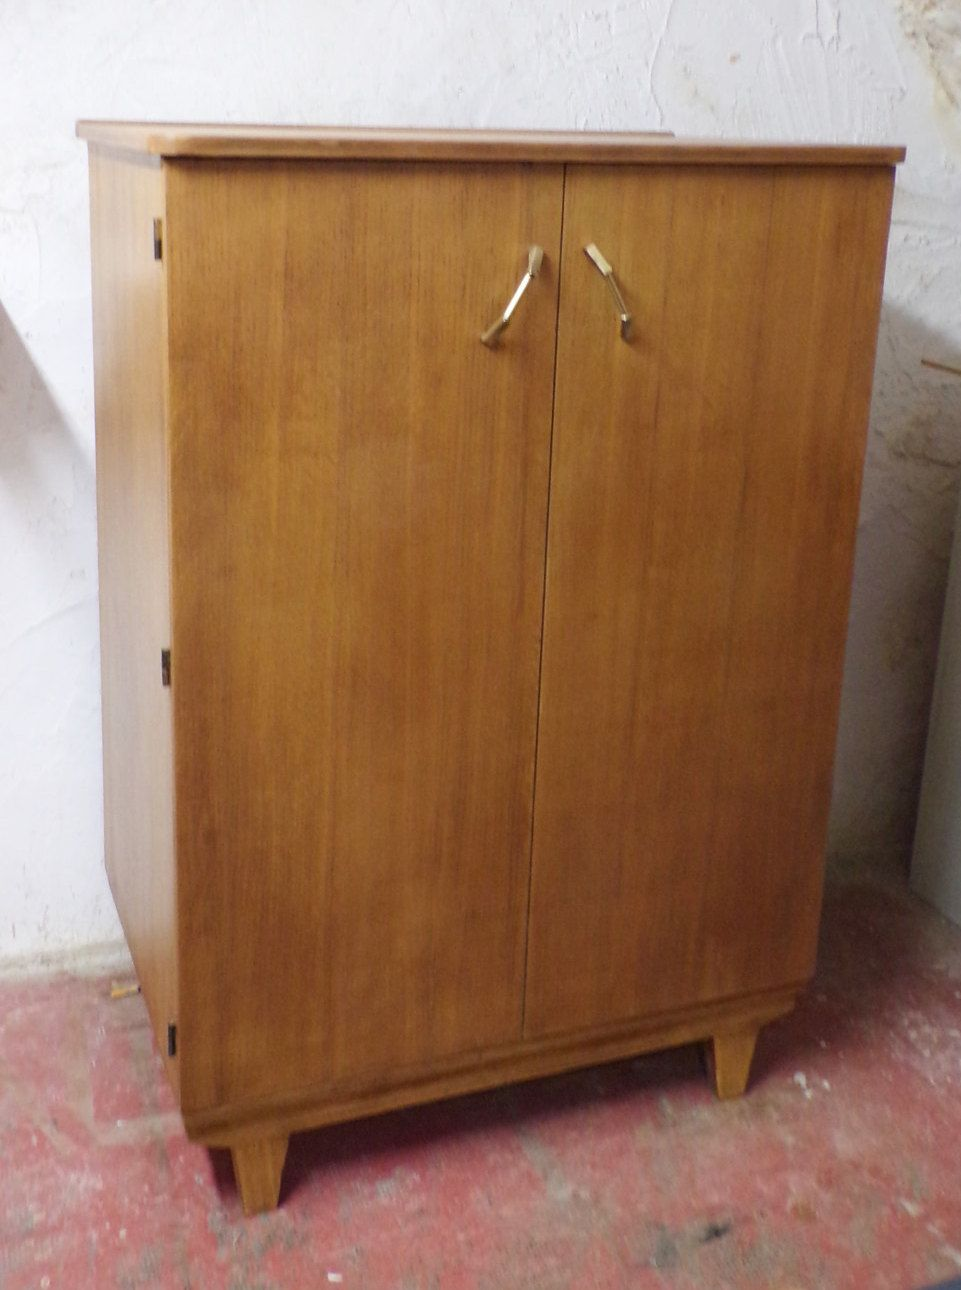 Commode Bois Buffet Commode Bois Massif 1960 Mid Century Commode Rétro